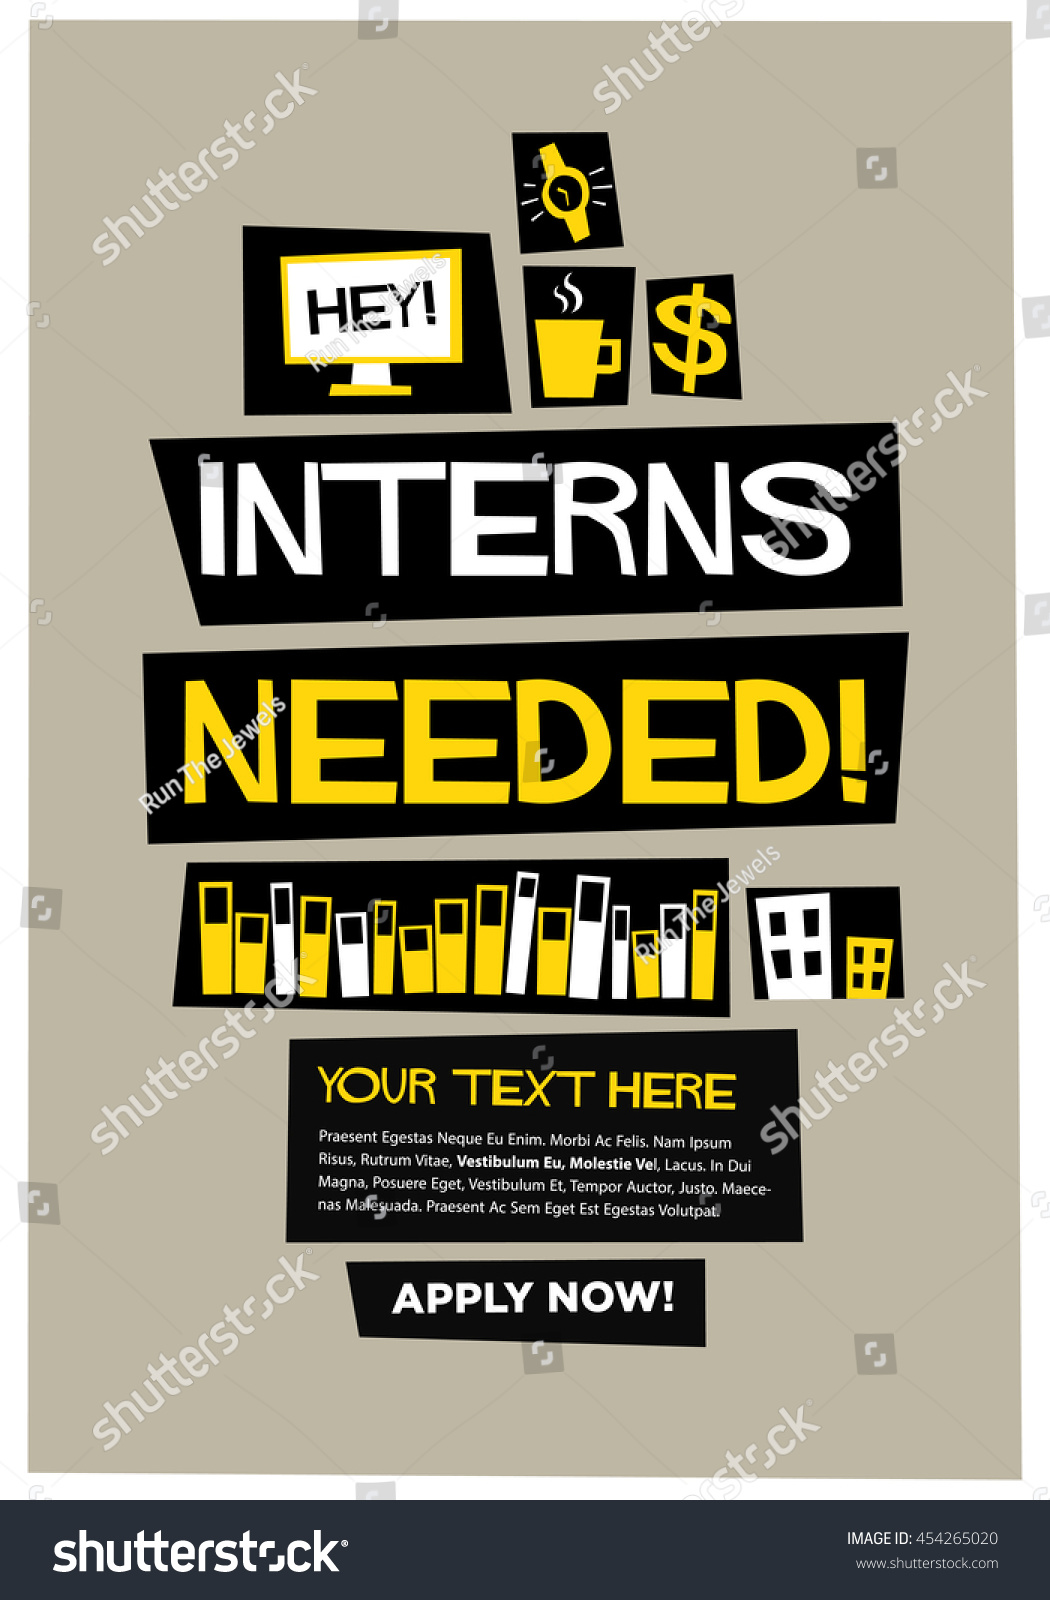 Interns needed flat style vector illustration recruitment poster design with text box template